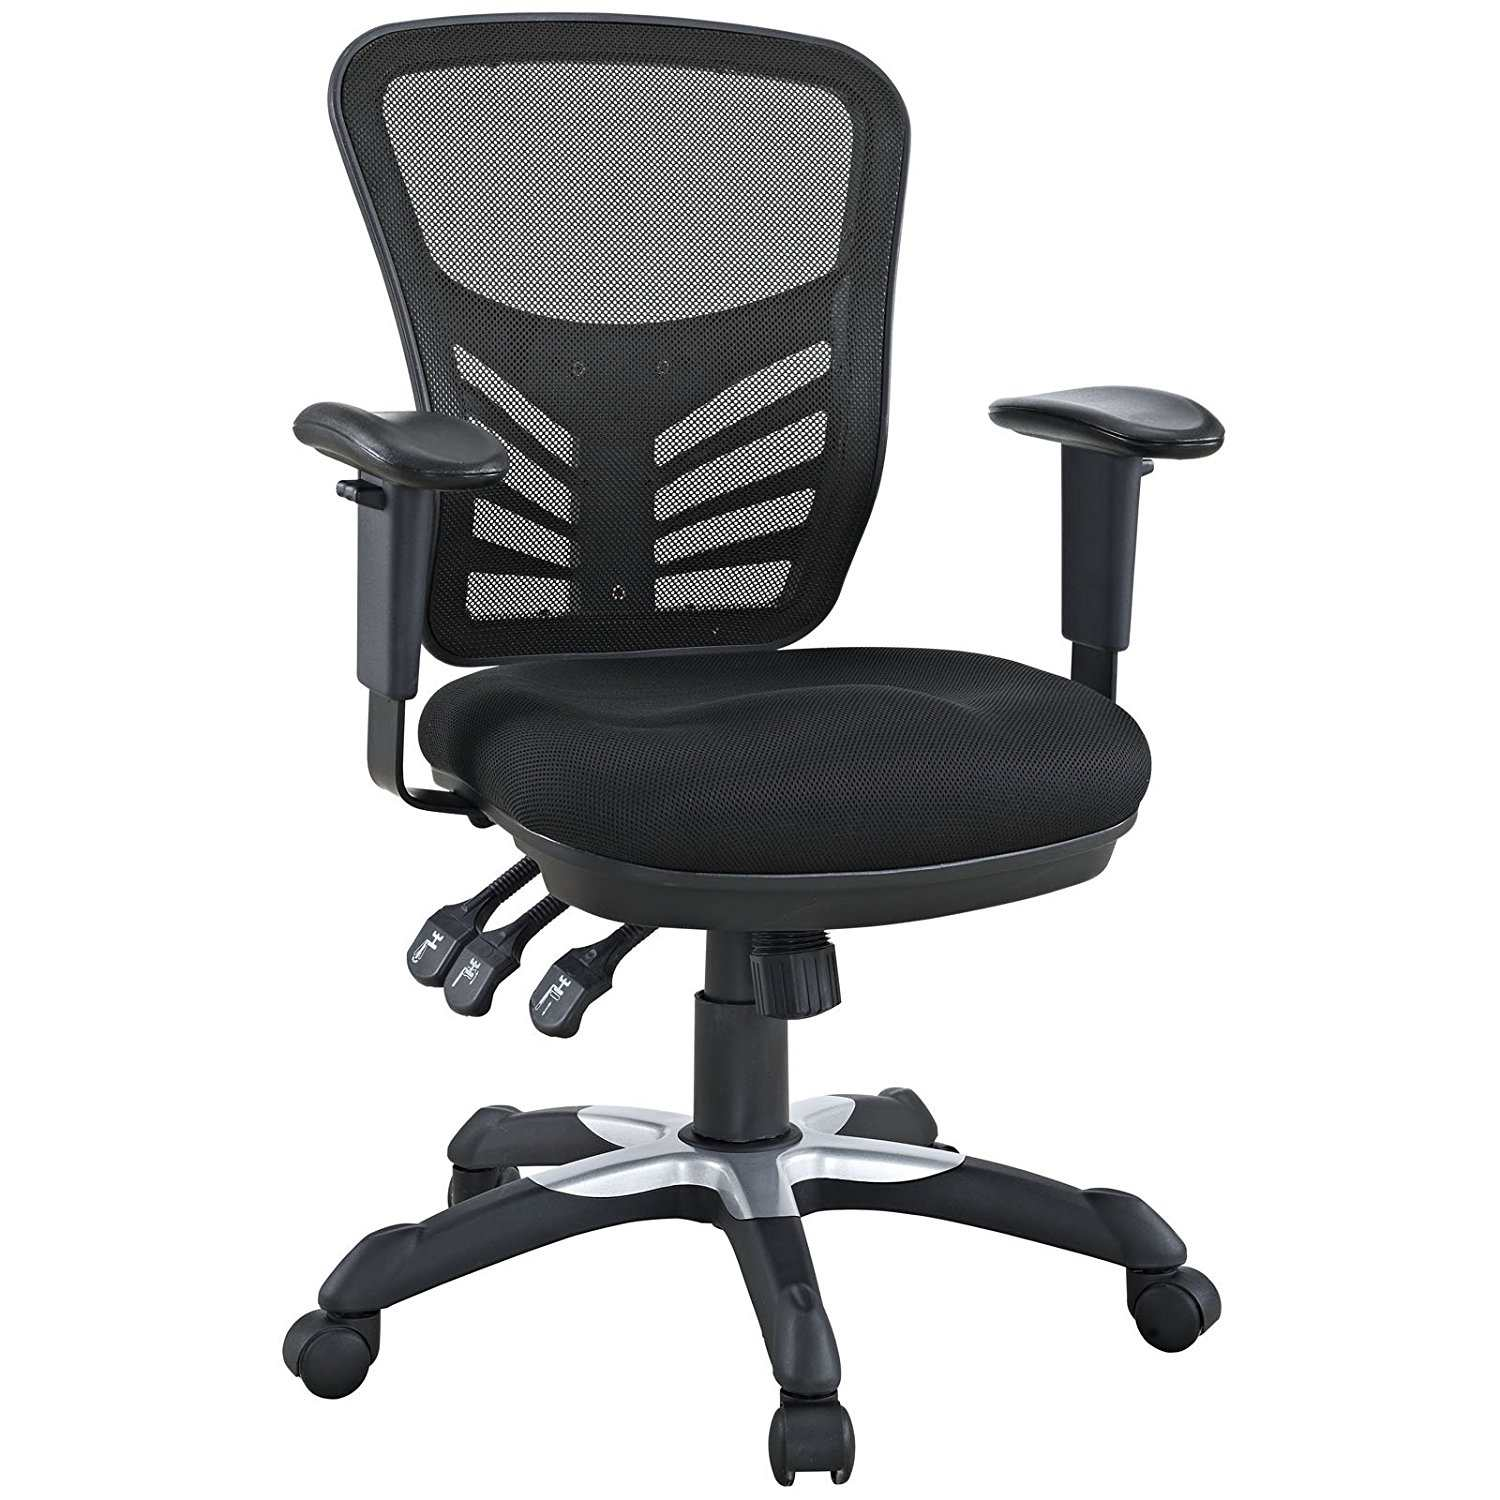 c8a45e2e8 The 8 Best Budget Office Chairs of 2019